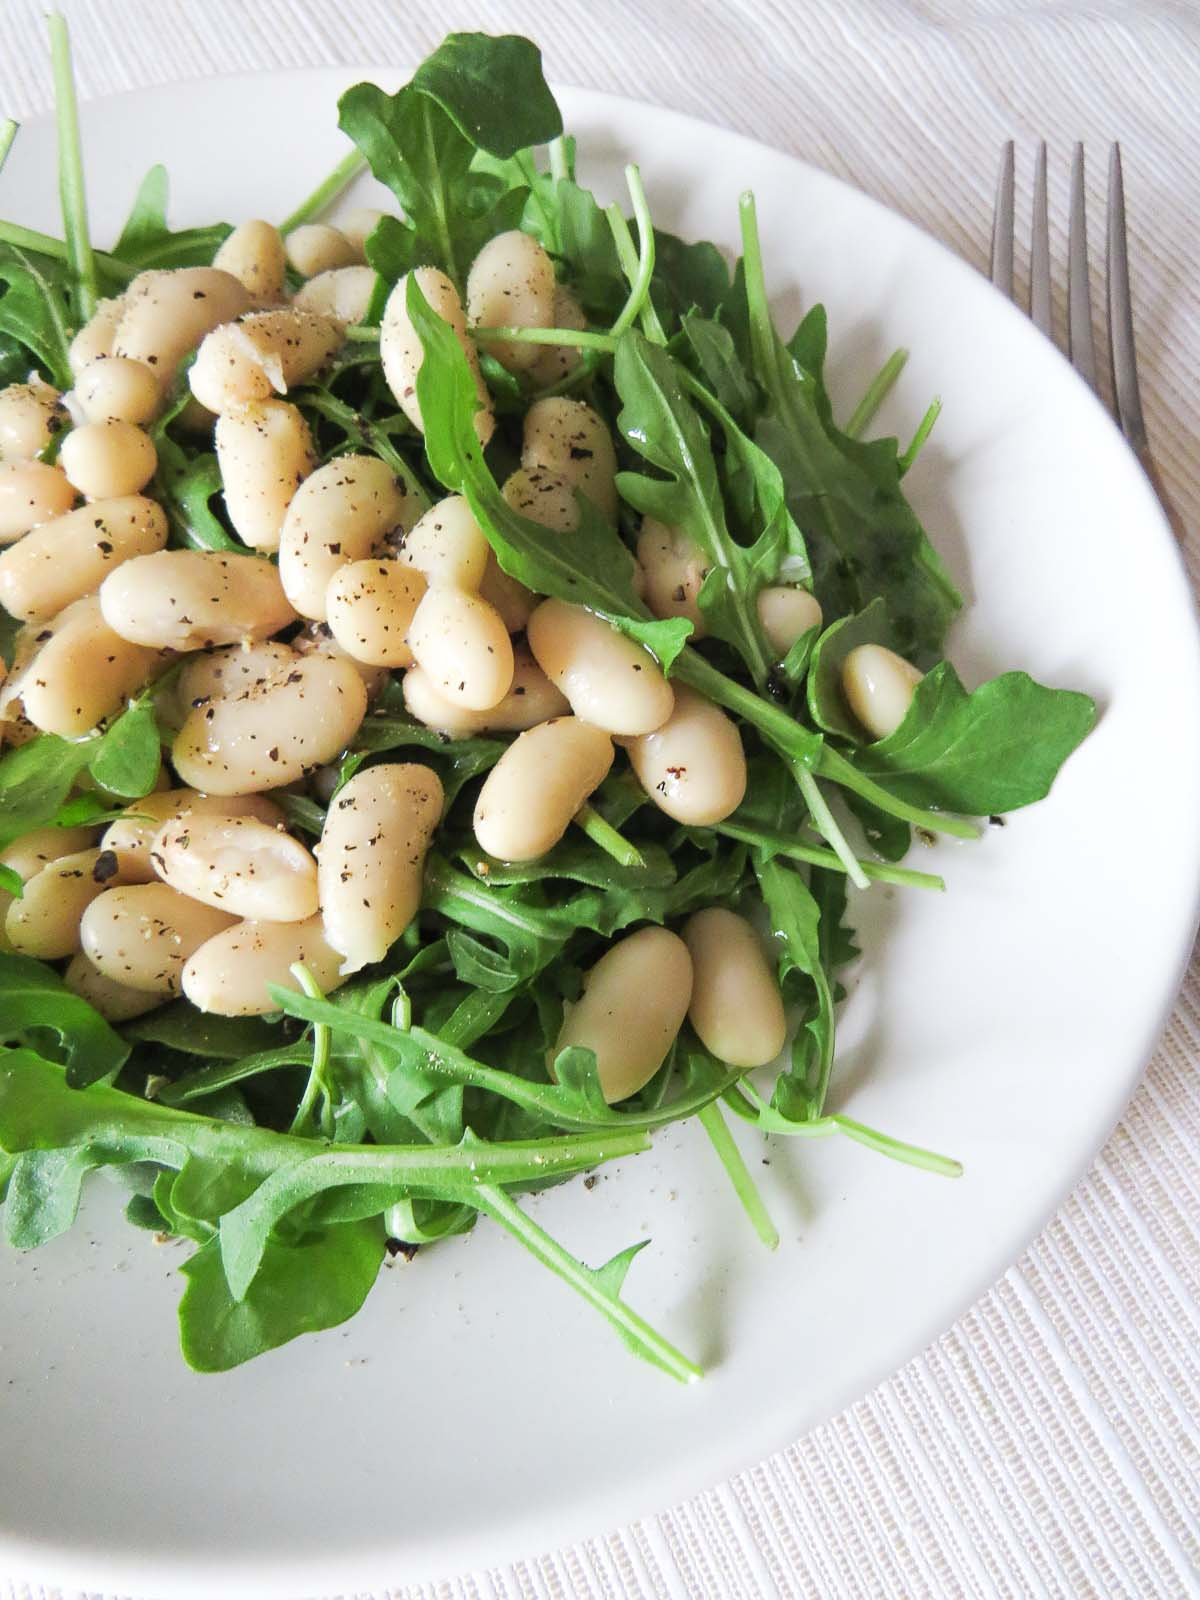 arugula salad with cannellini beans